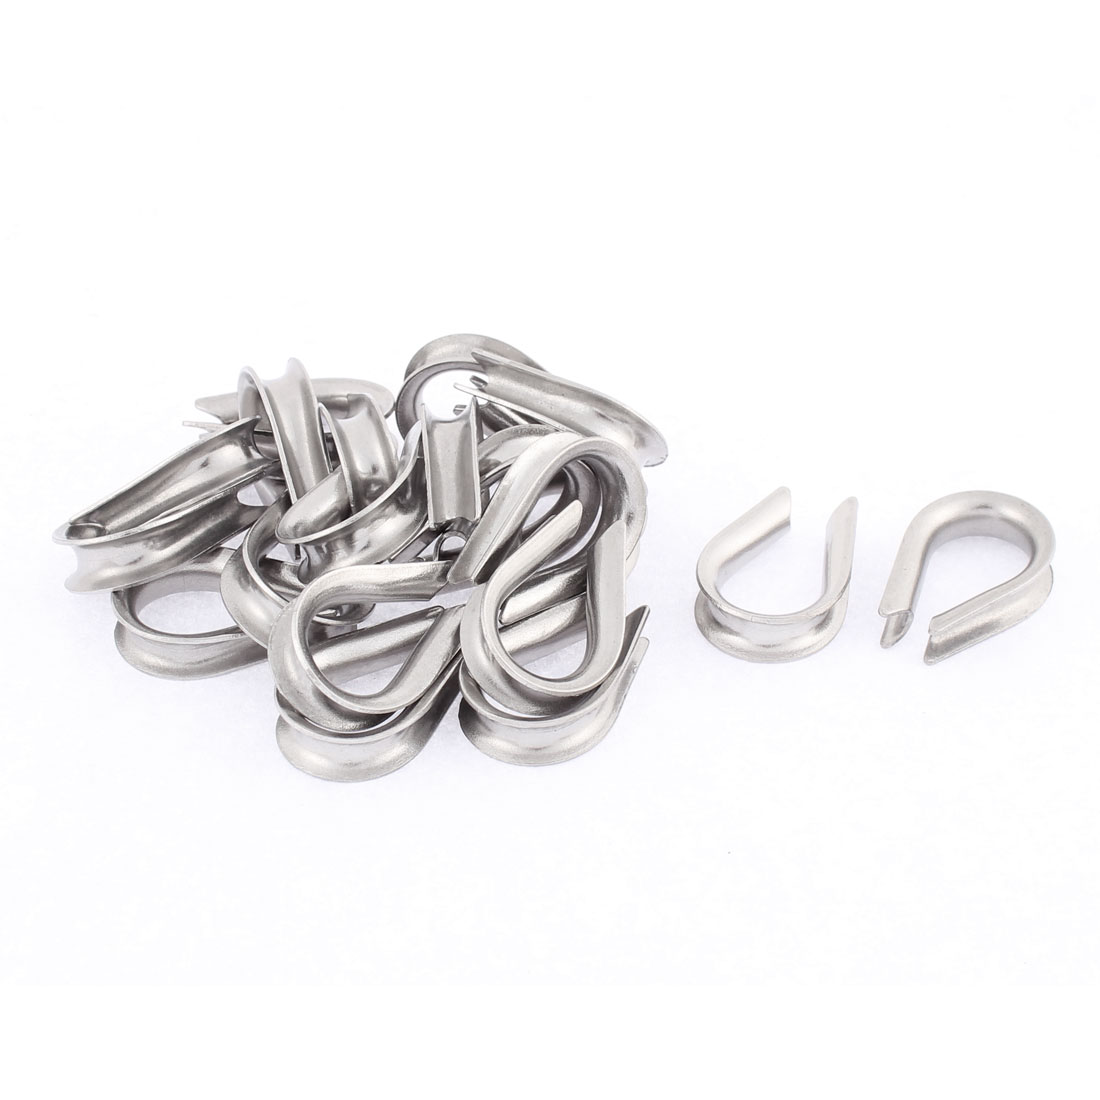 Stainless Steel 4mm Standard Wire Rope Cable Thimbles Rigging Silver Tone 20pcs